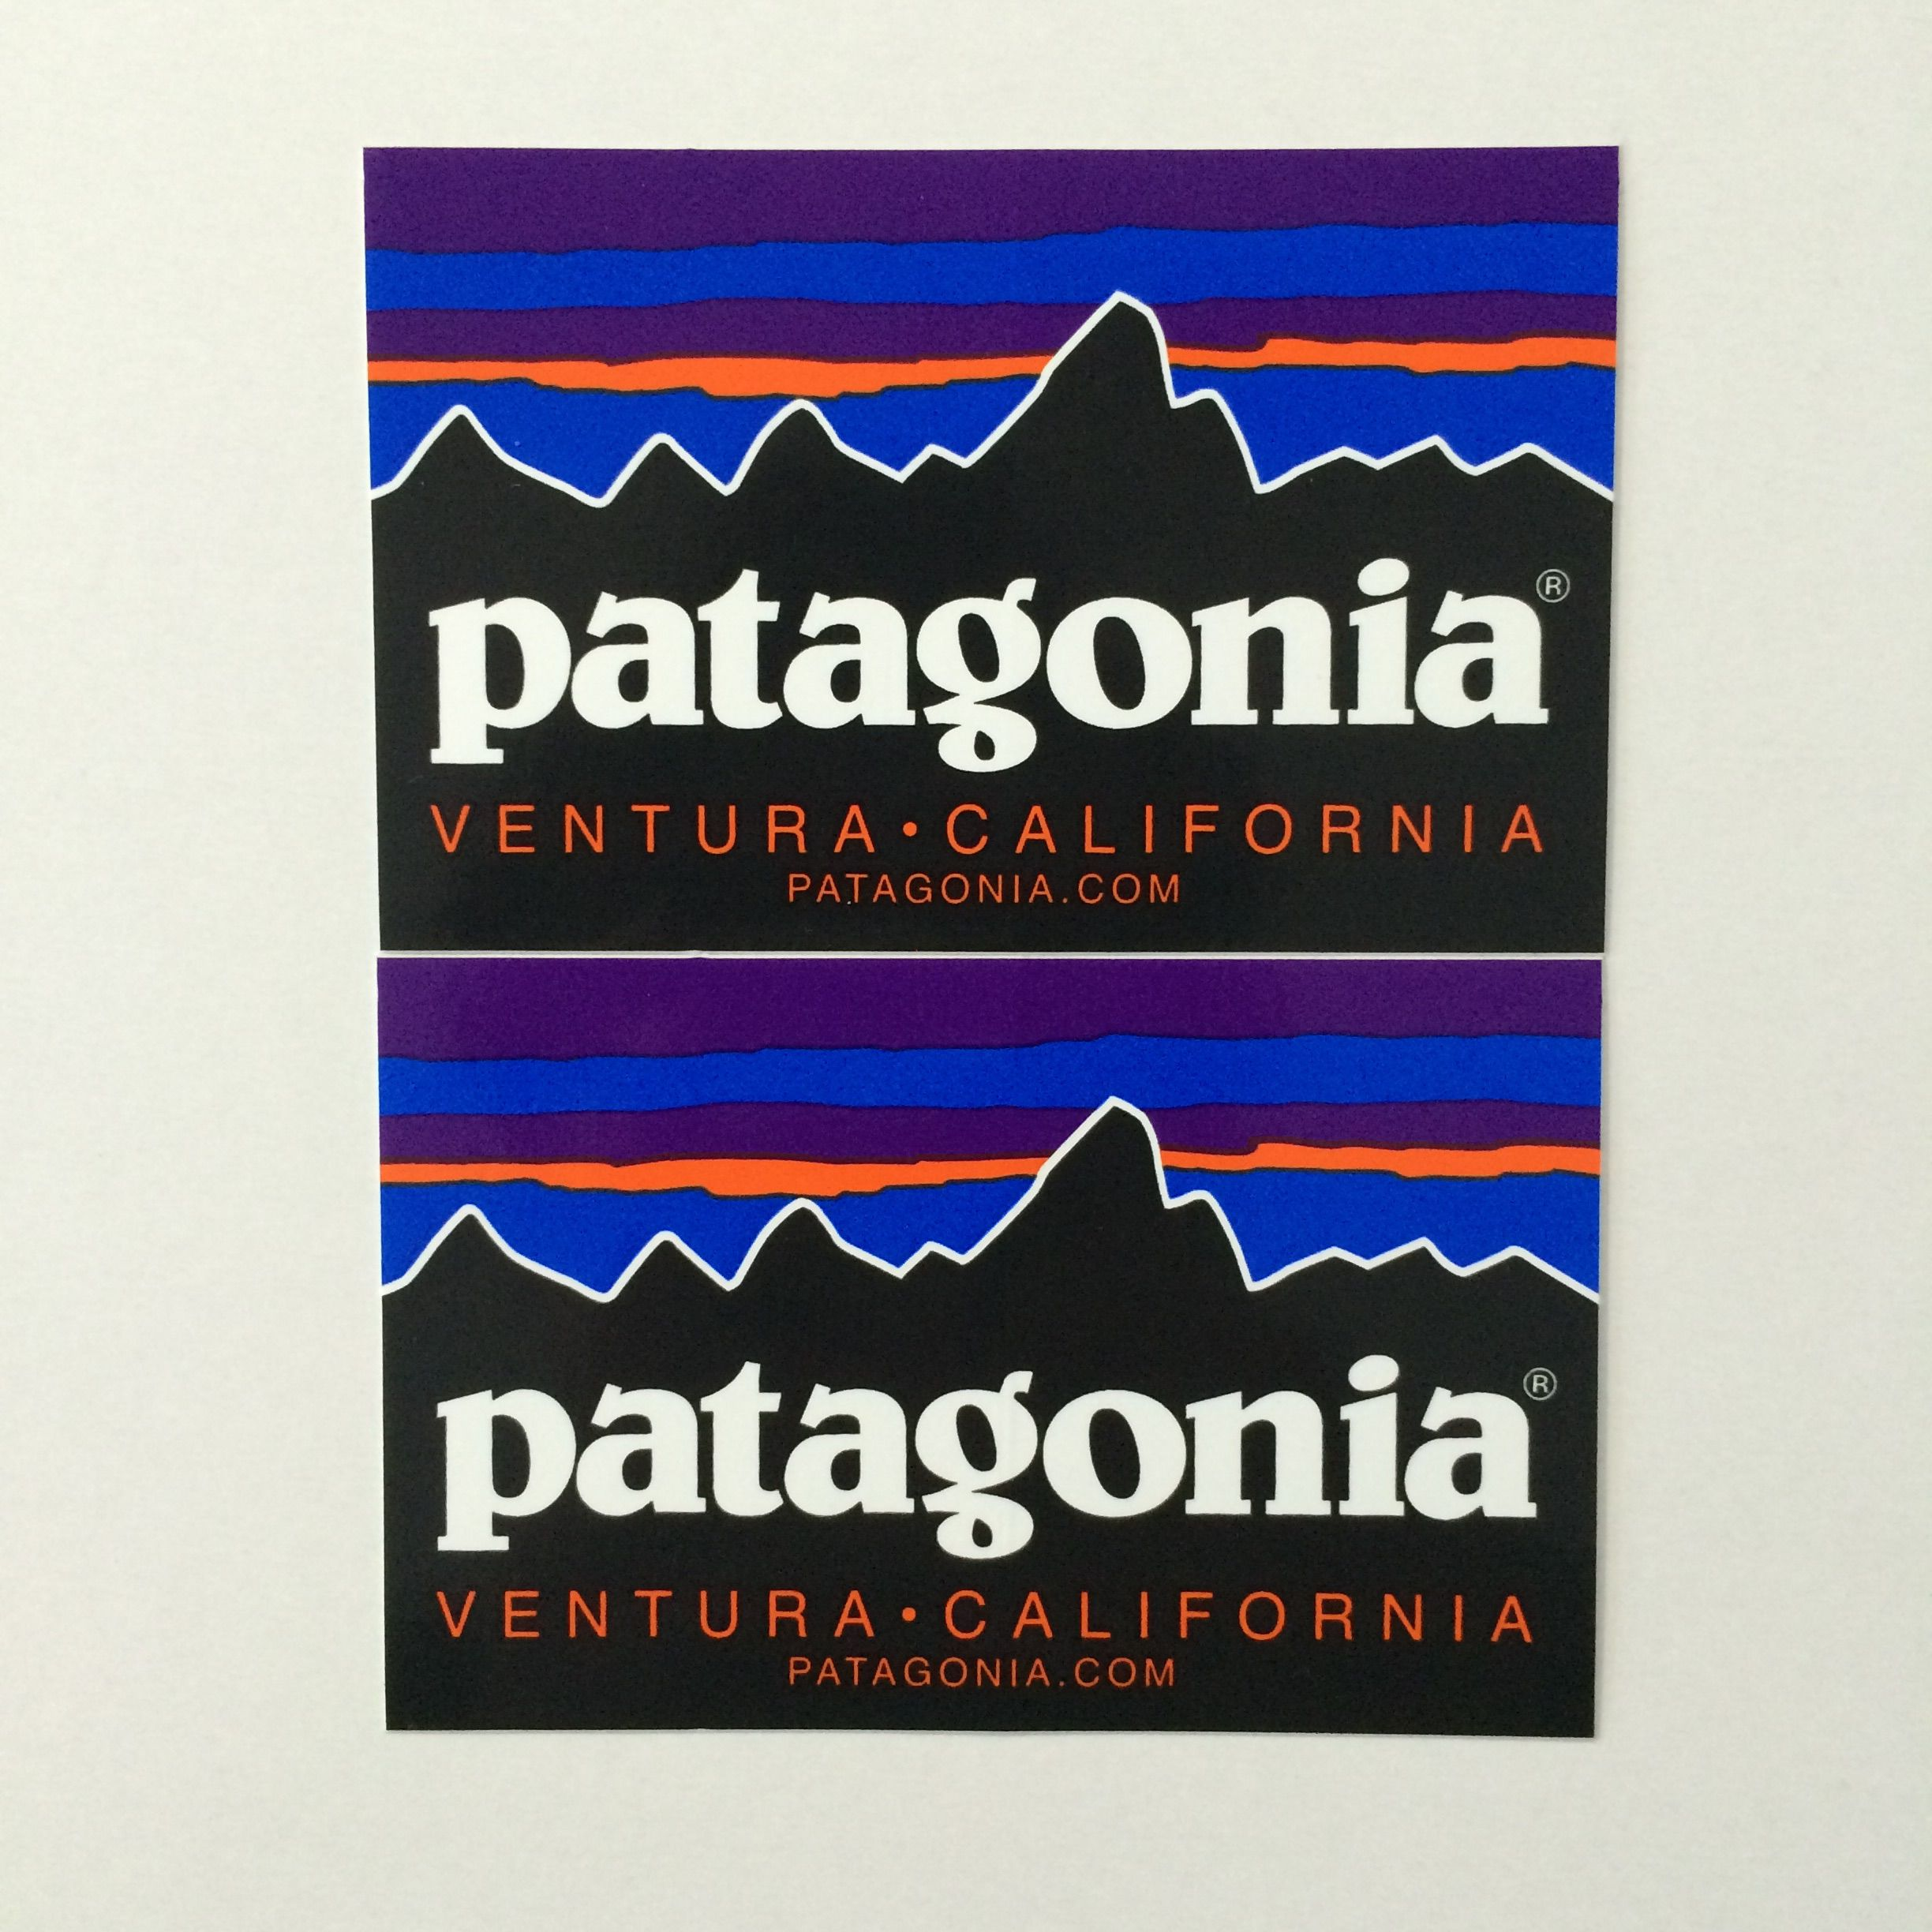 patagonia fitzroy ステッカー2枚セット